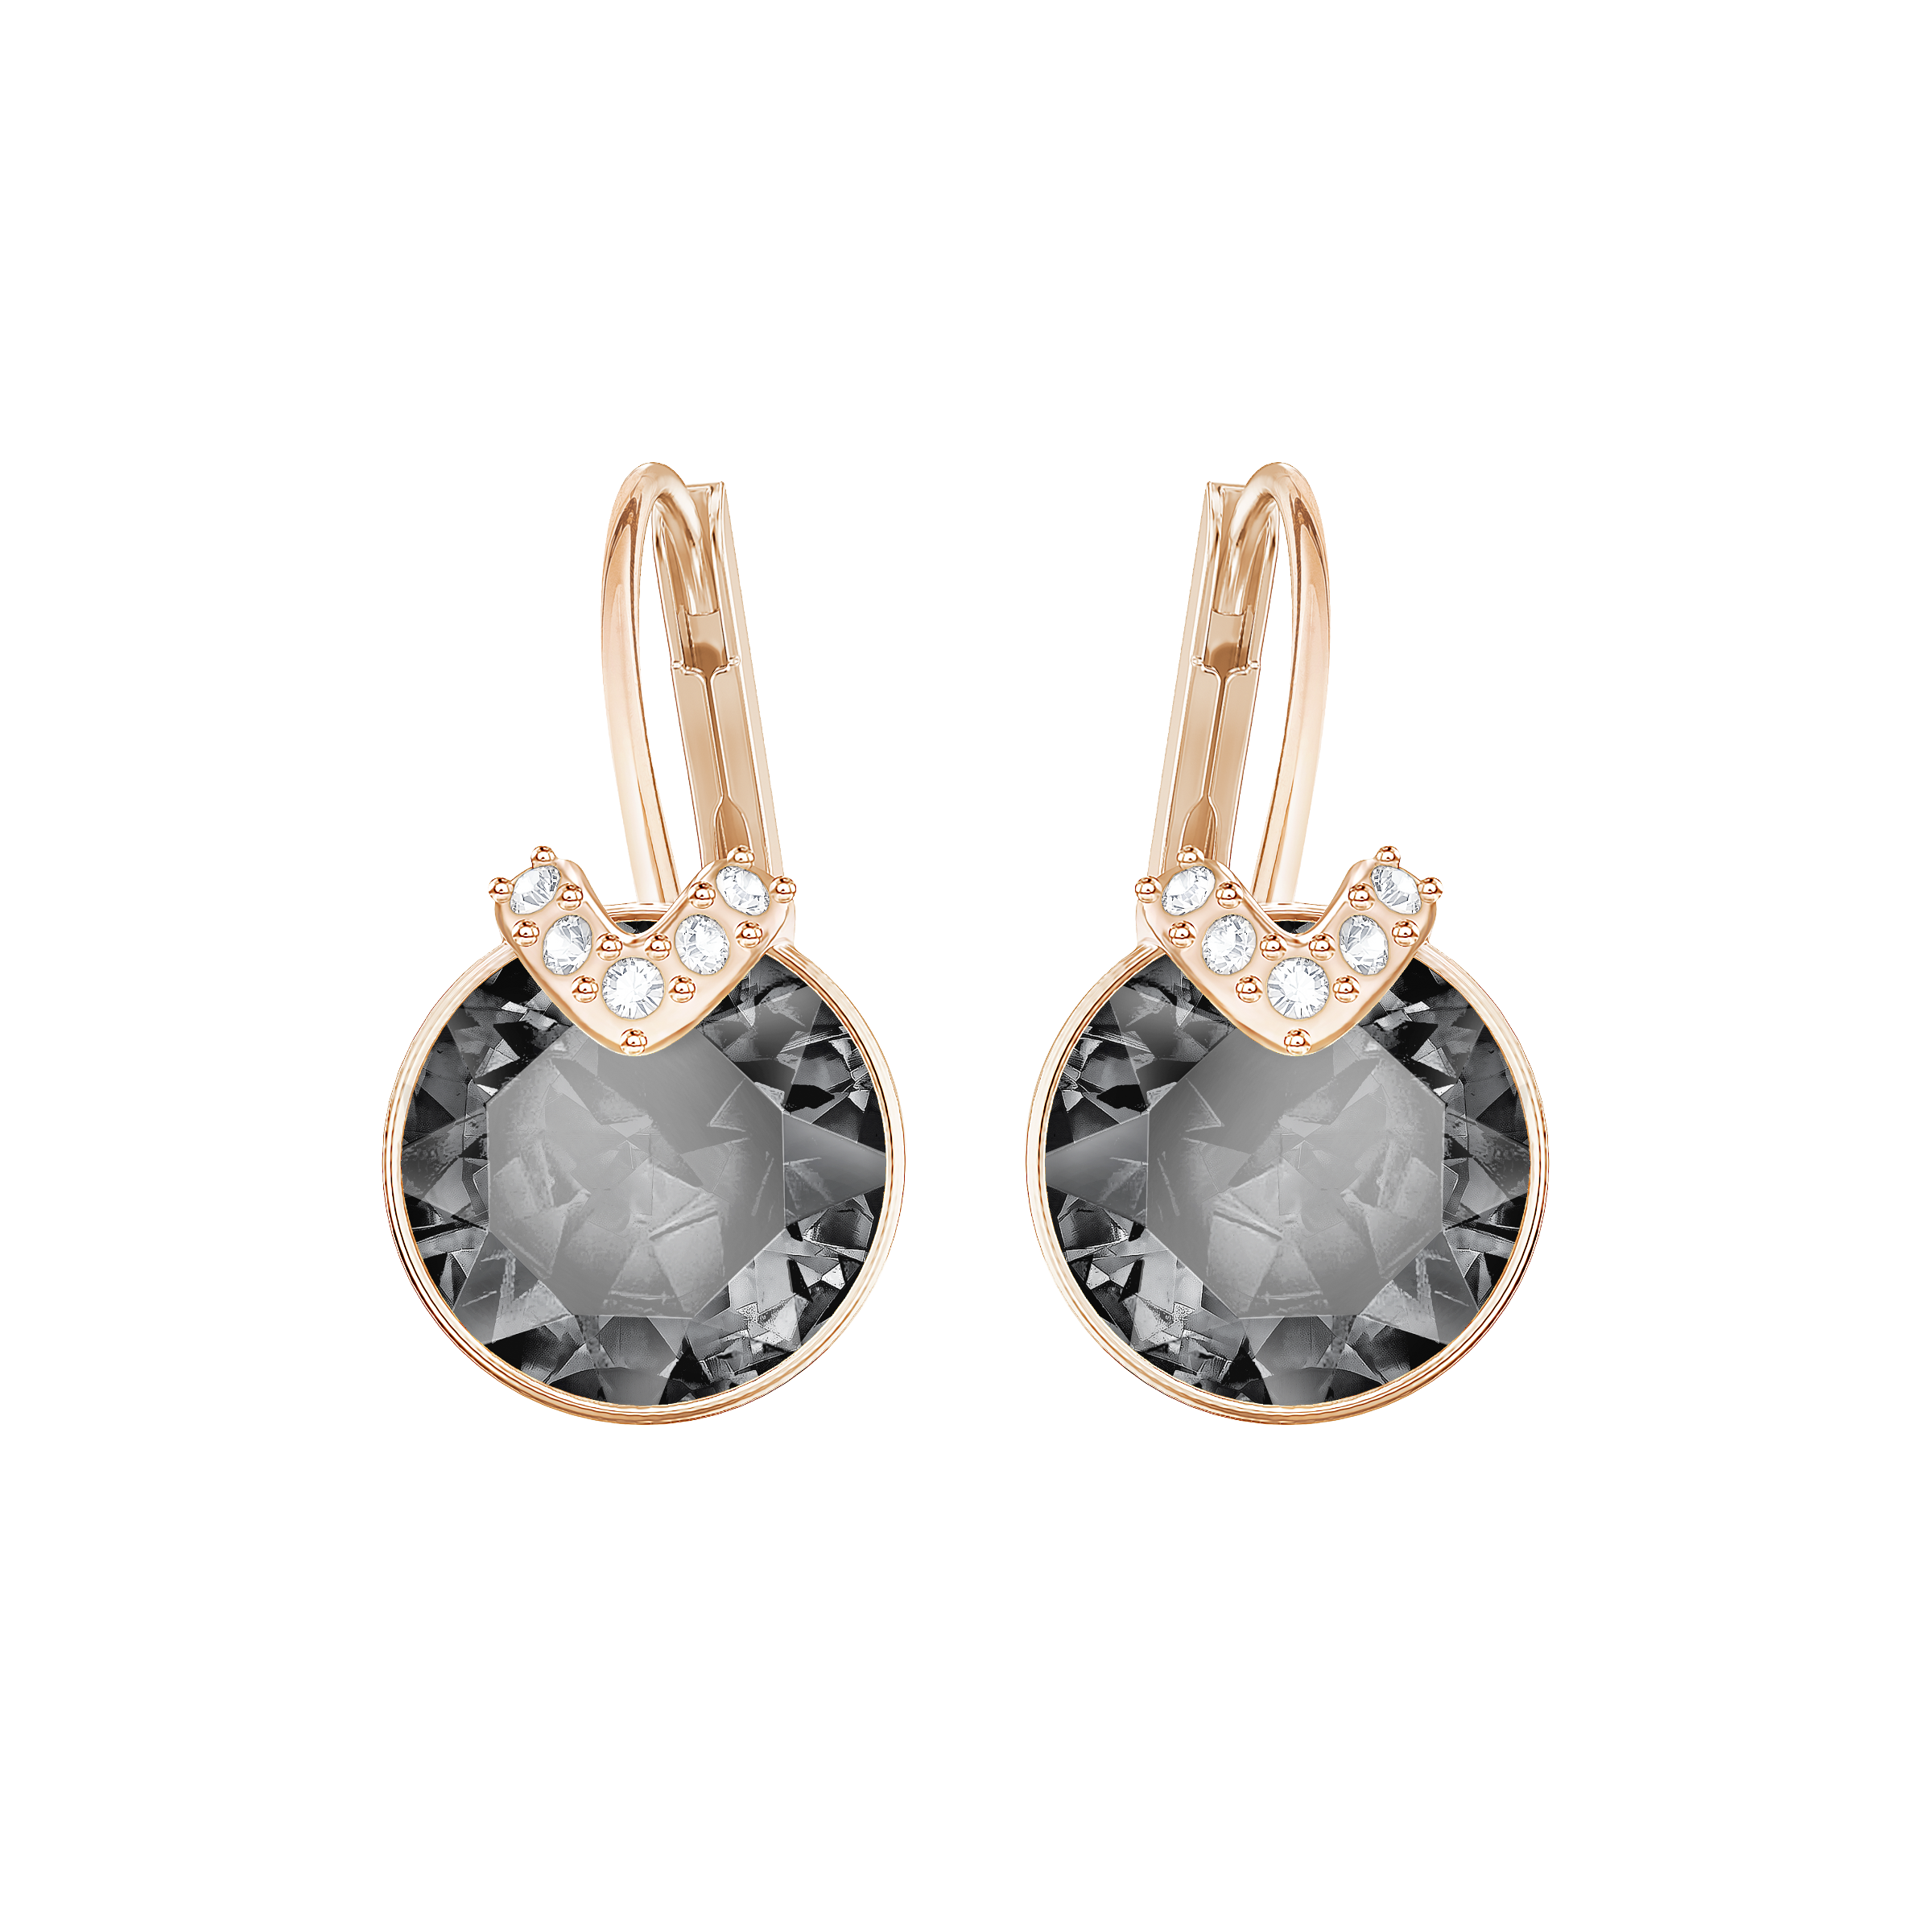 Bella V Pierced Earrings, Gray, Rose Gold Plated